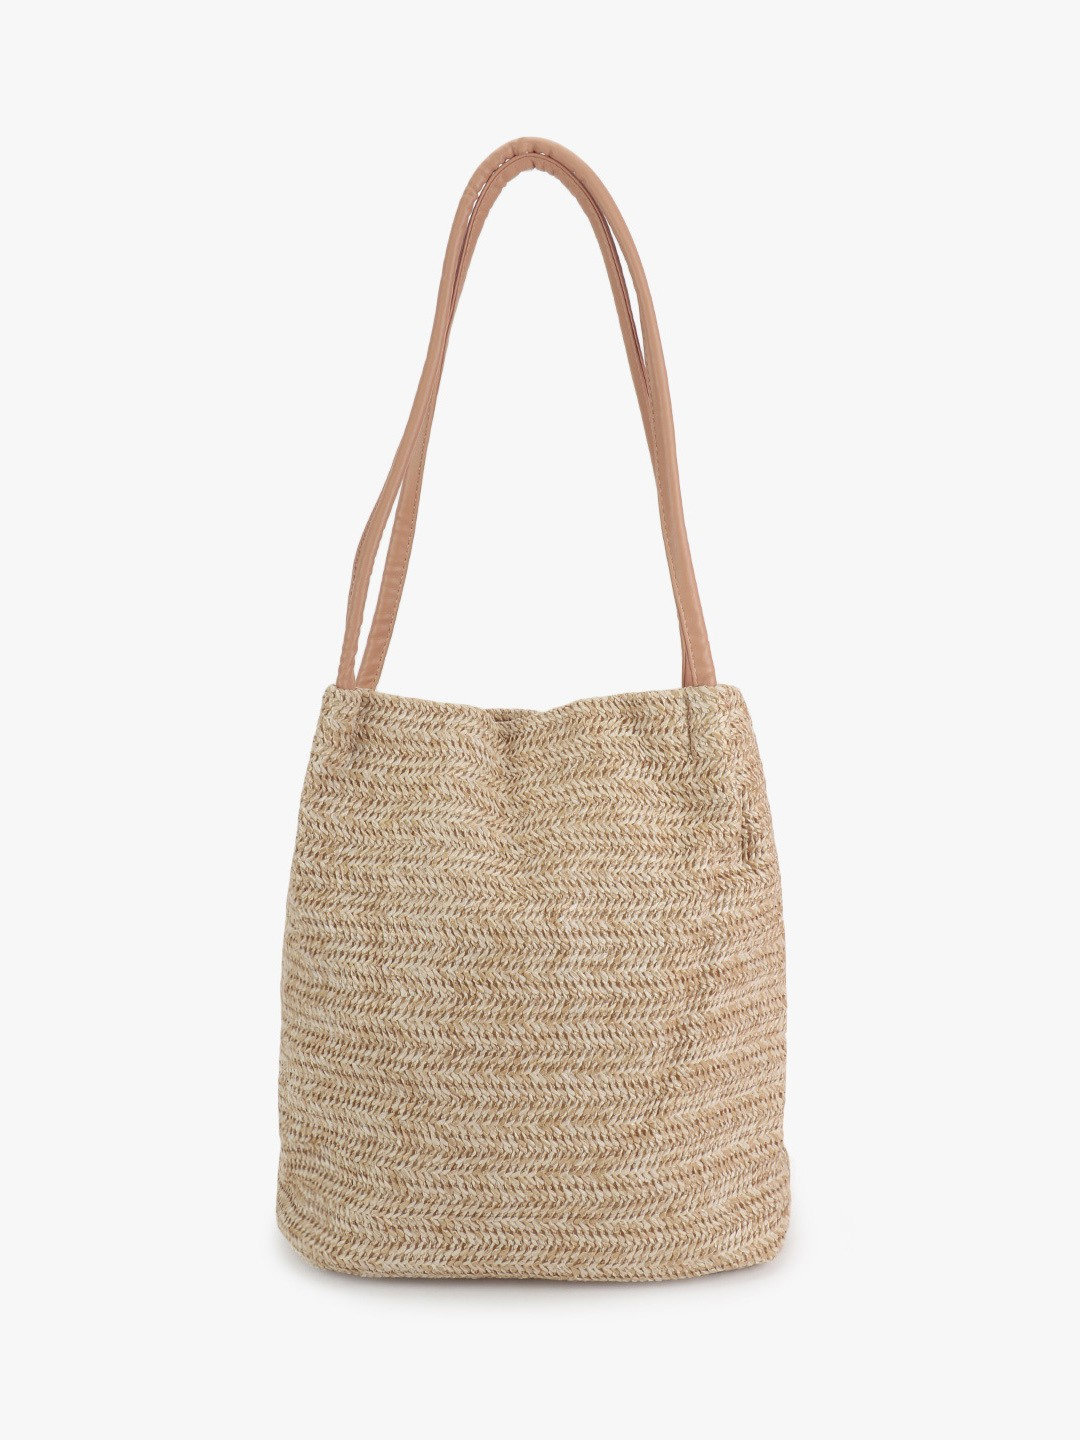 Origami Lily Beige Natural Wicker Tote Bag 1